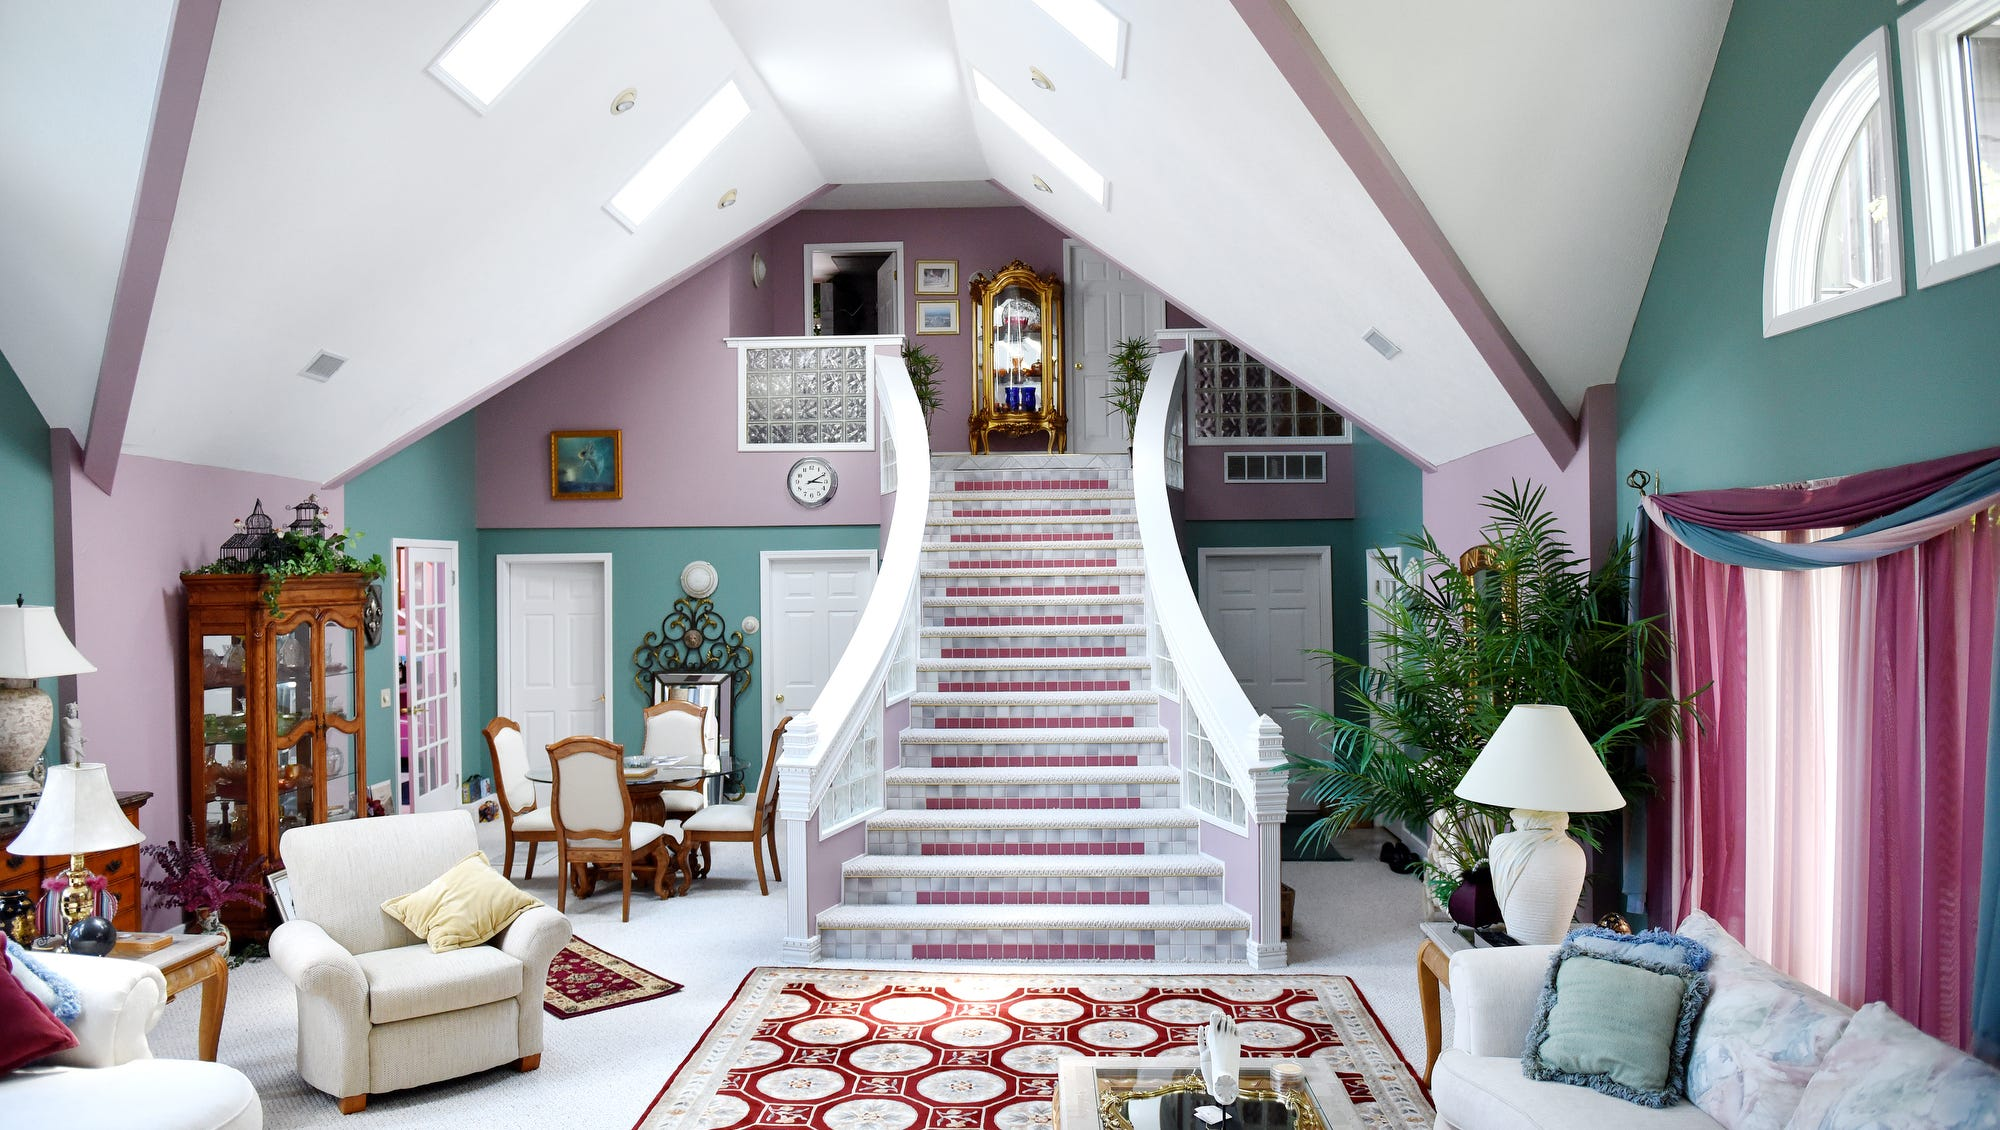 Cadillac Bar Titanic Inspired Stairway In Discount Dave S Home